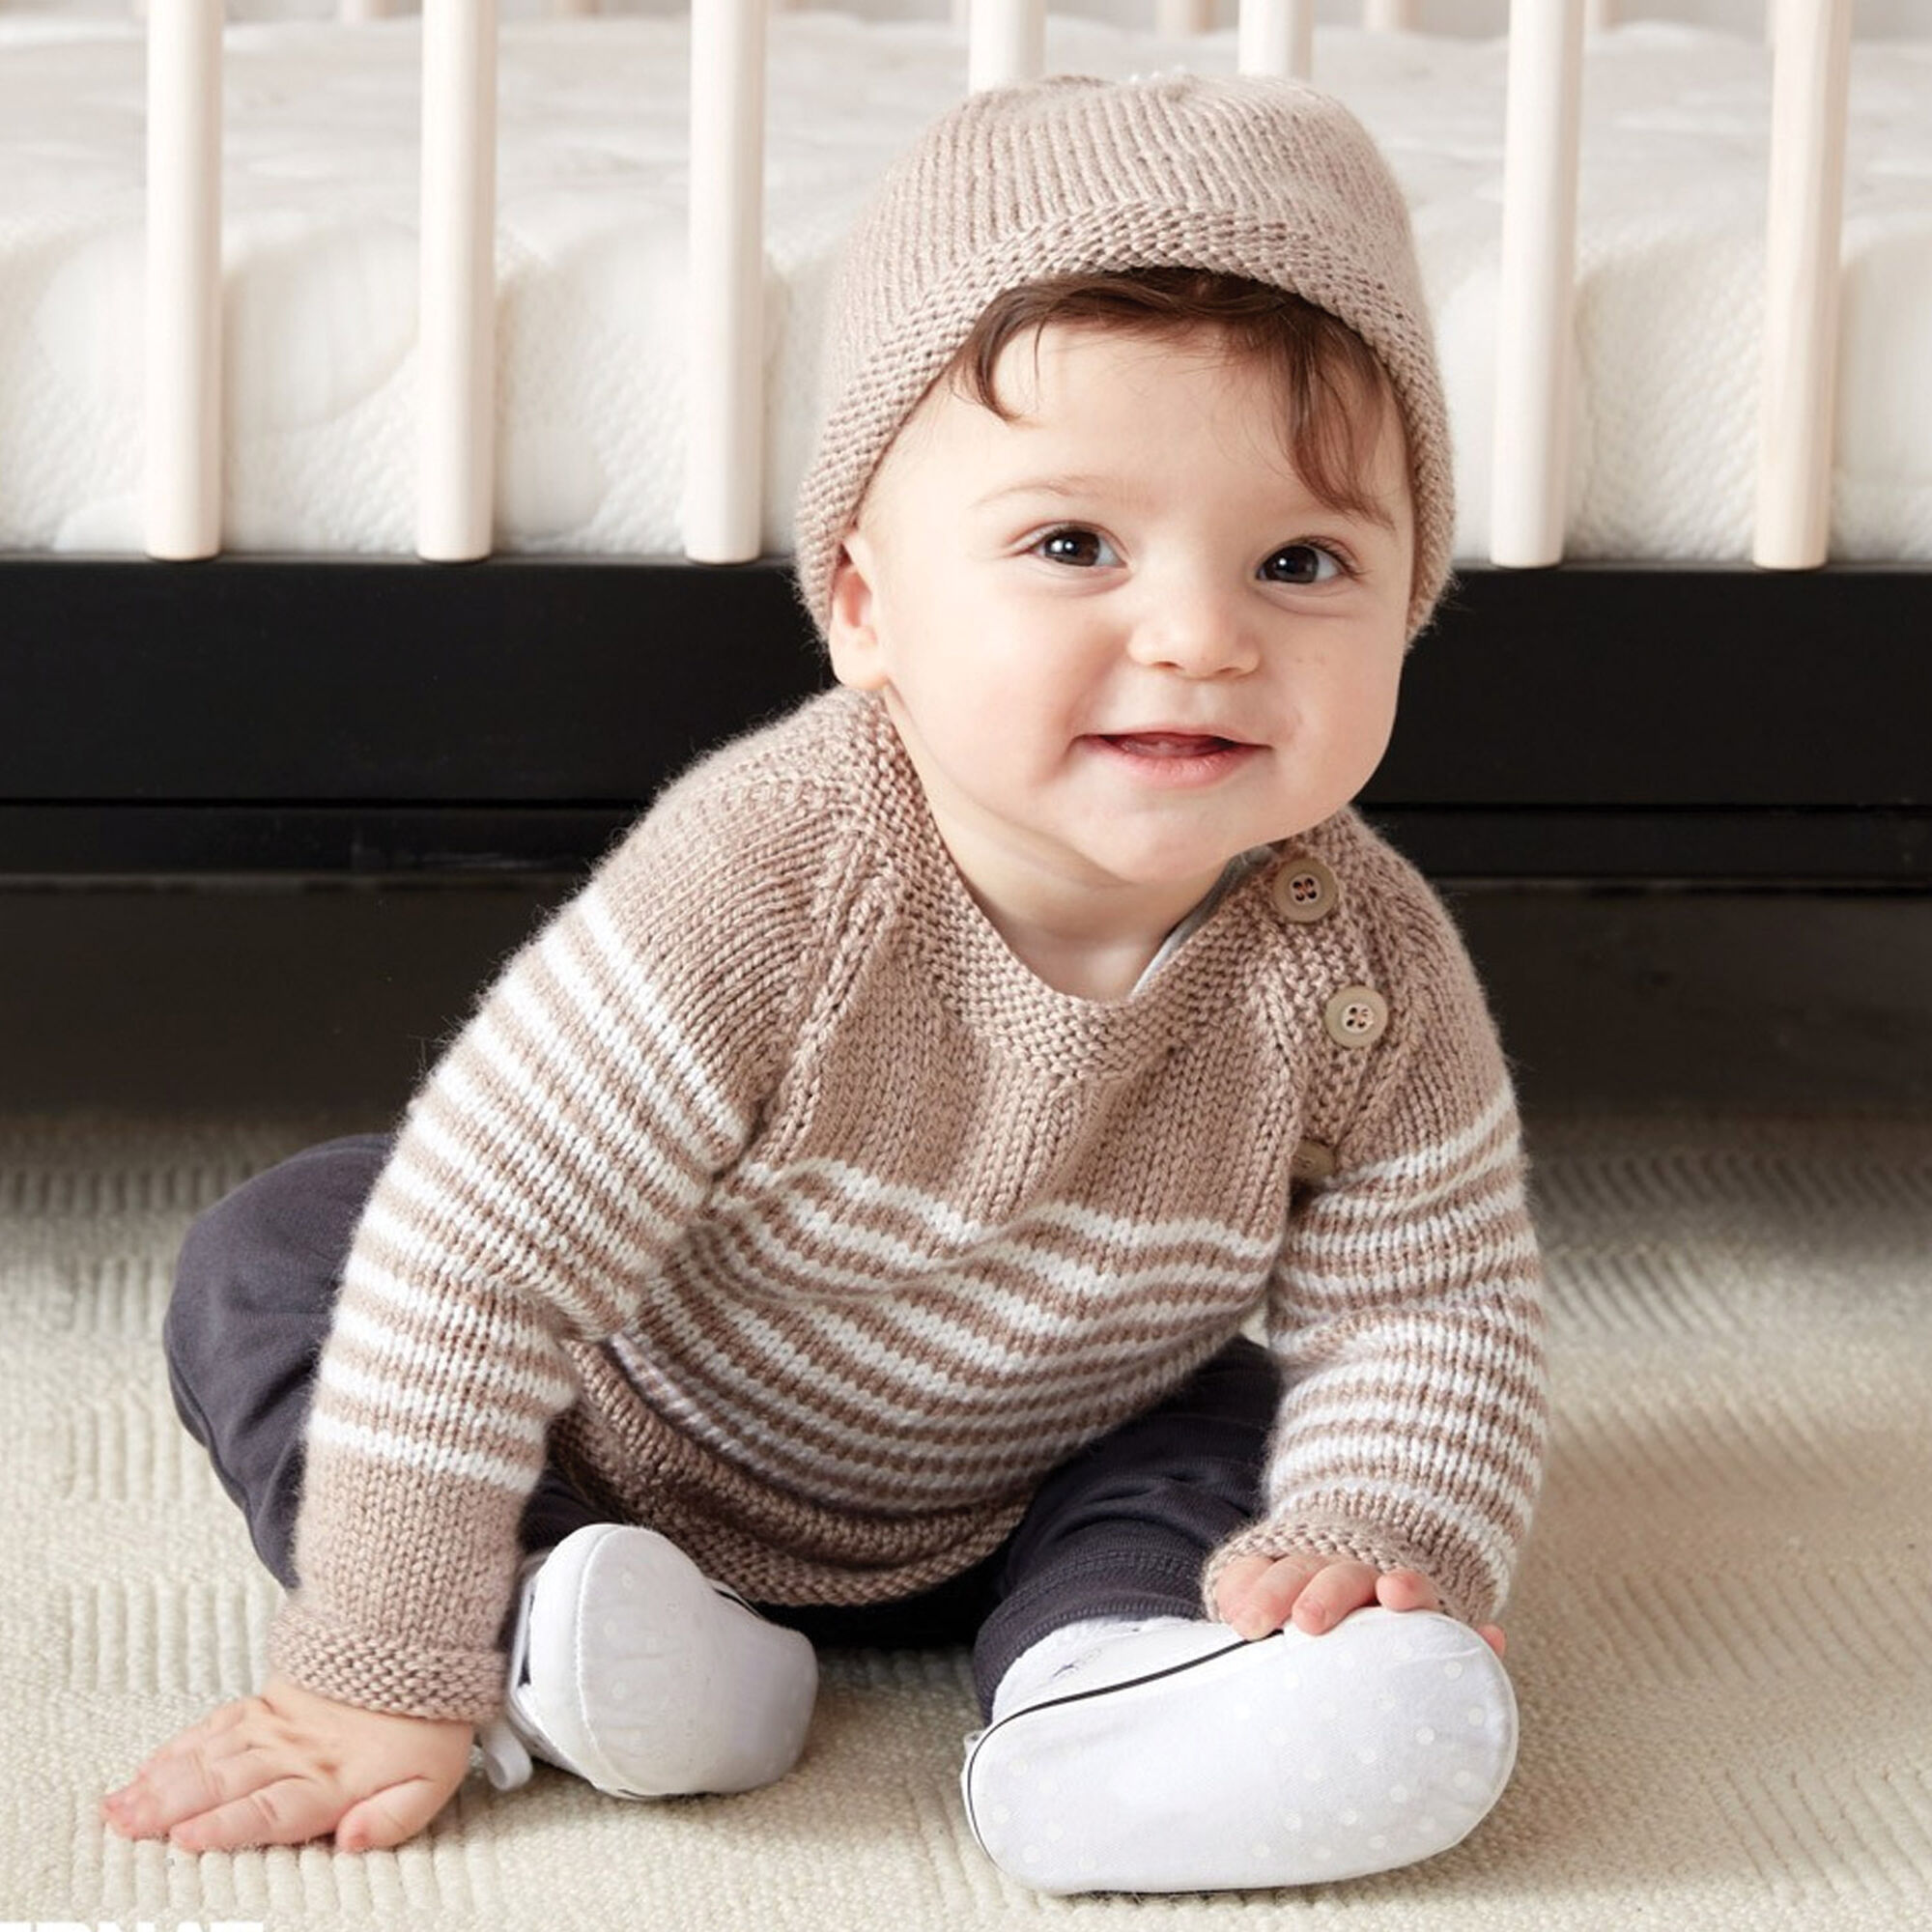 f5104ec8ab29 Bernat Wee Stripes Knit Pullover and Hat